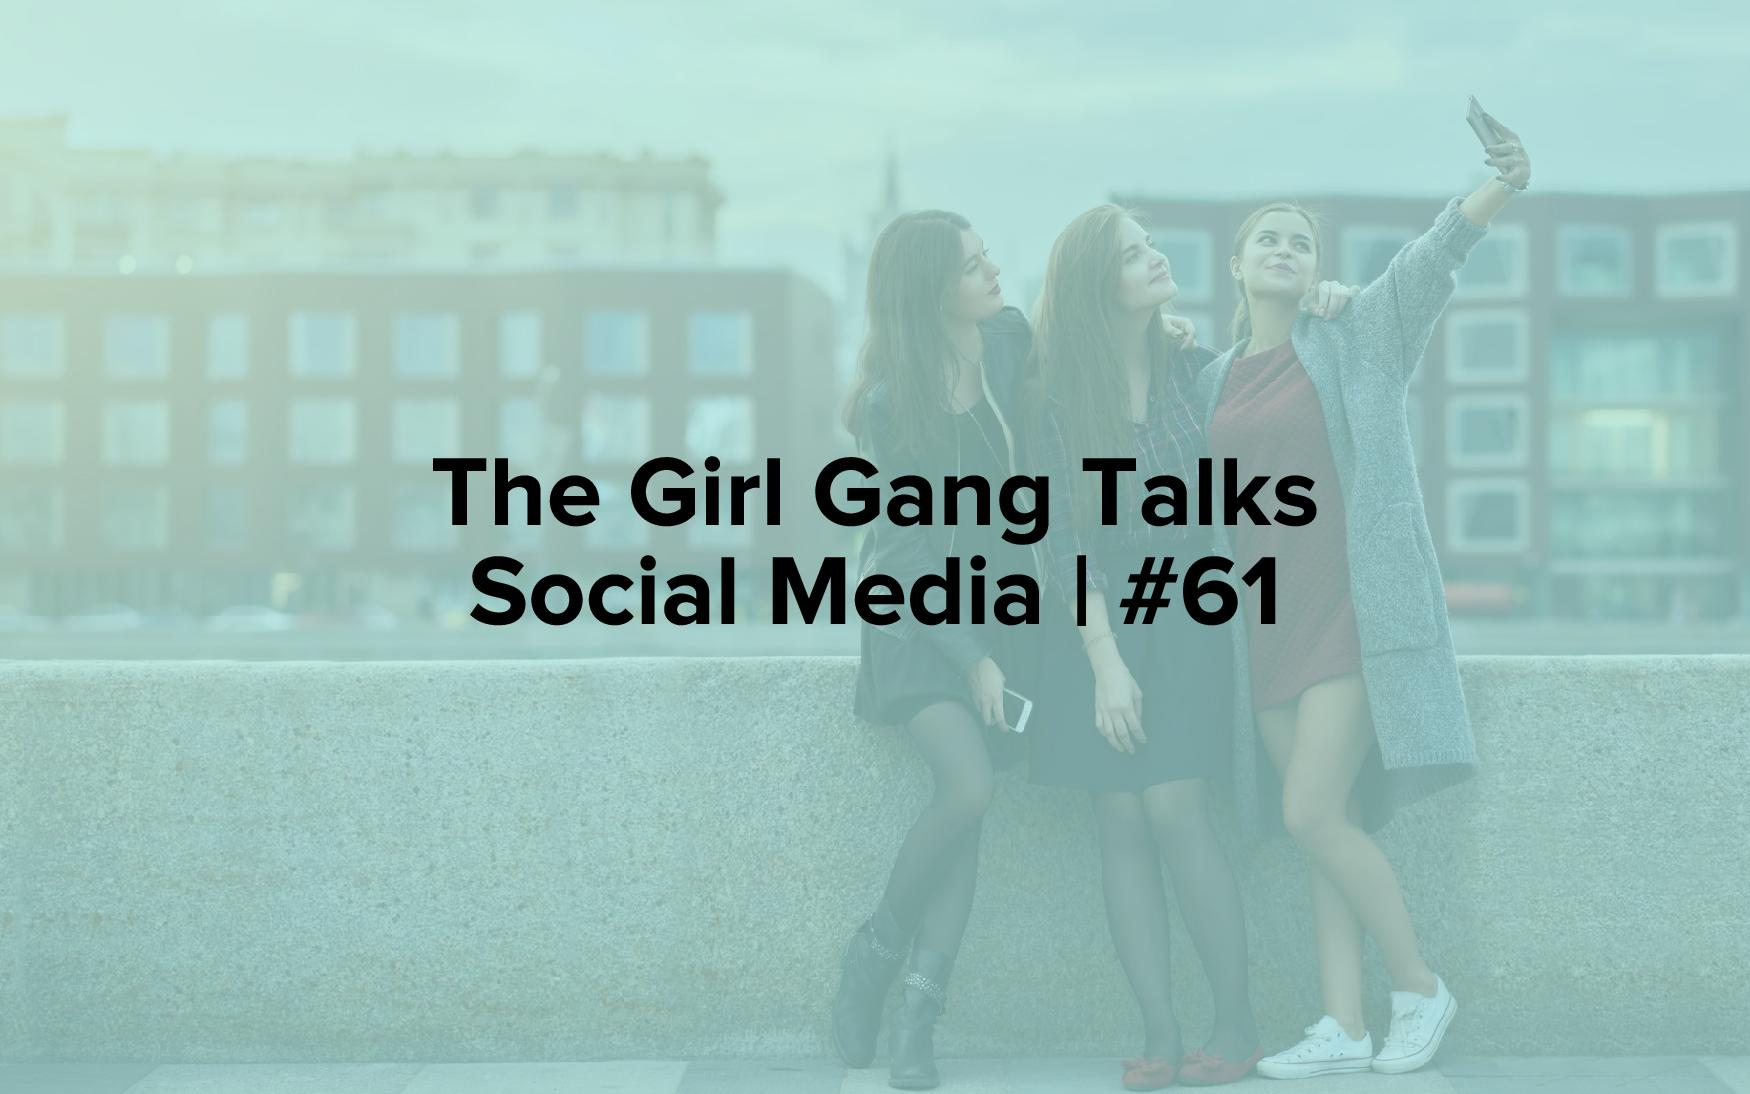 """Image text reads, """"The Girl Gang Talks Social Media 